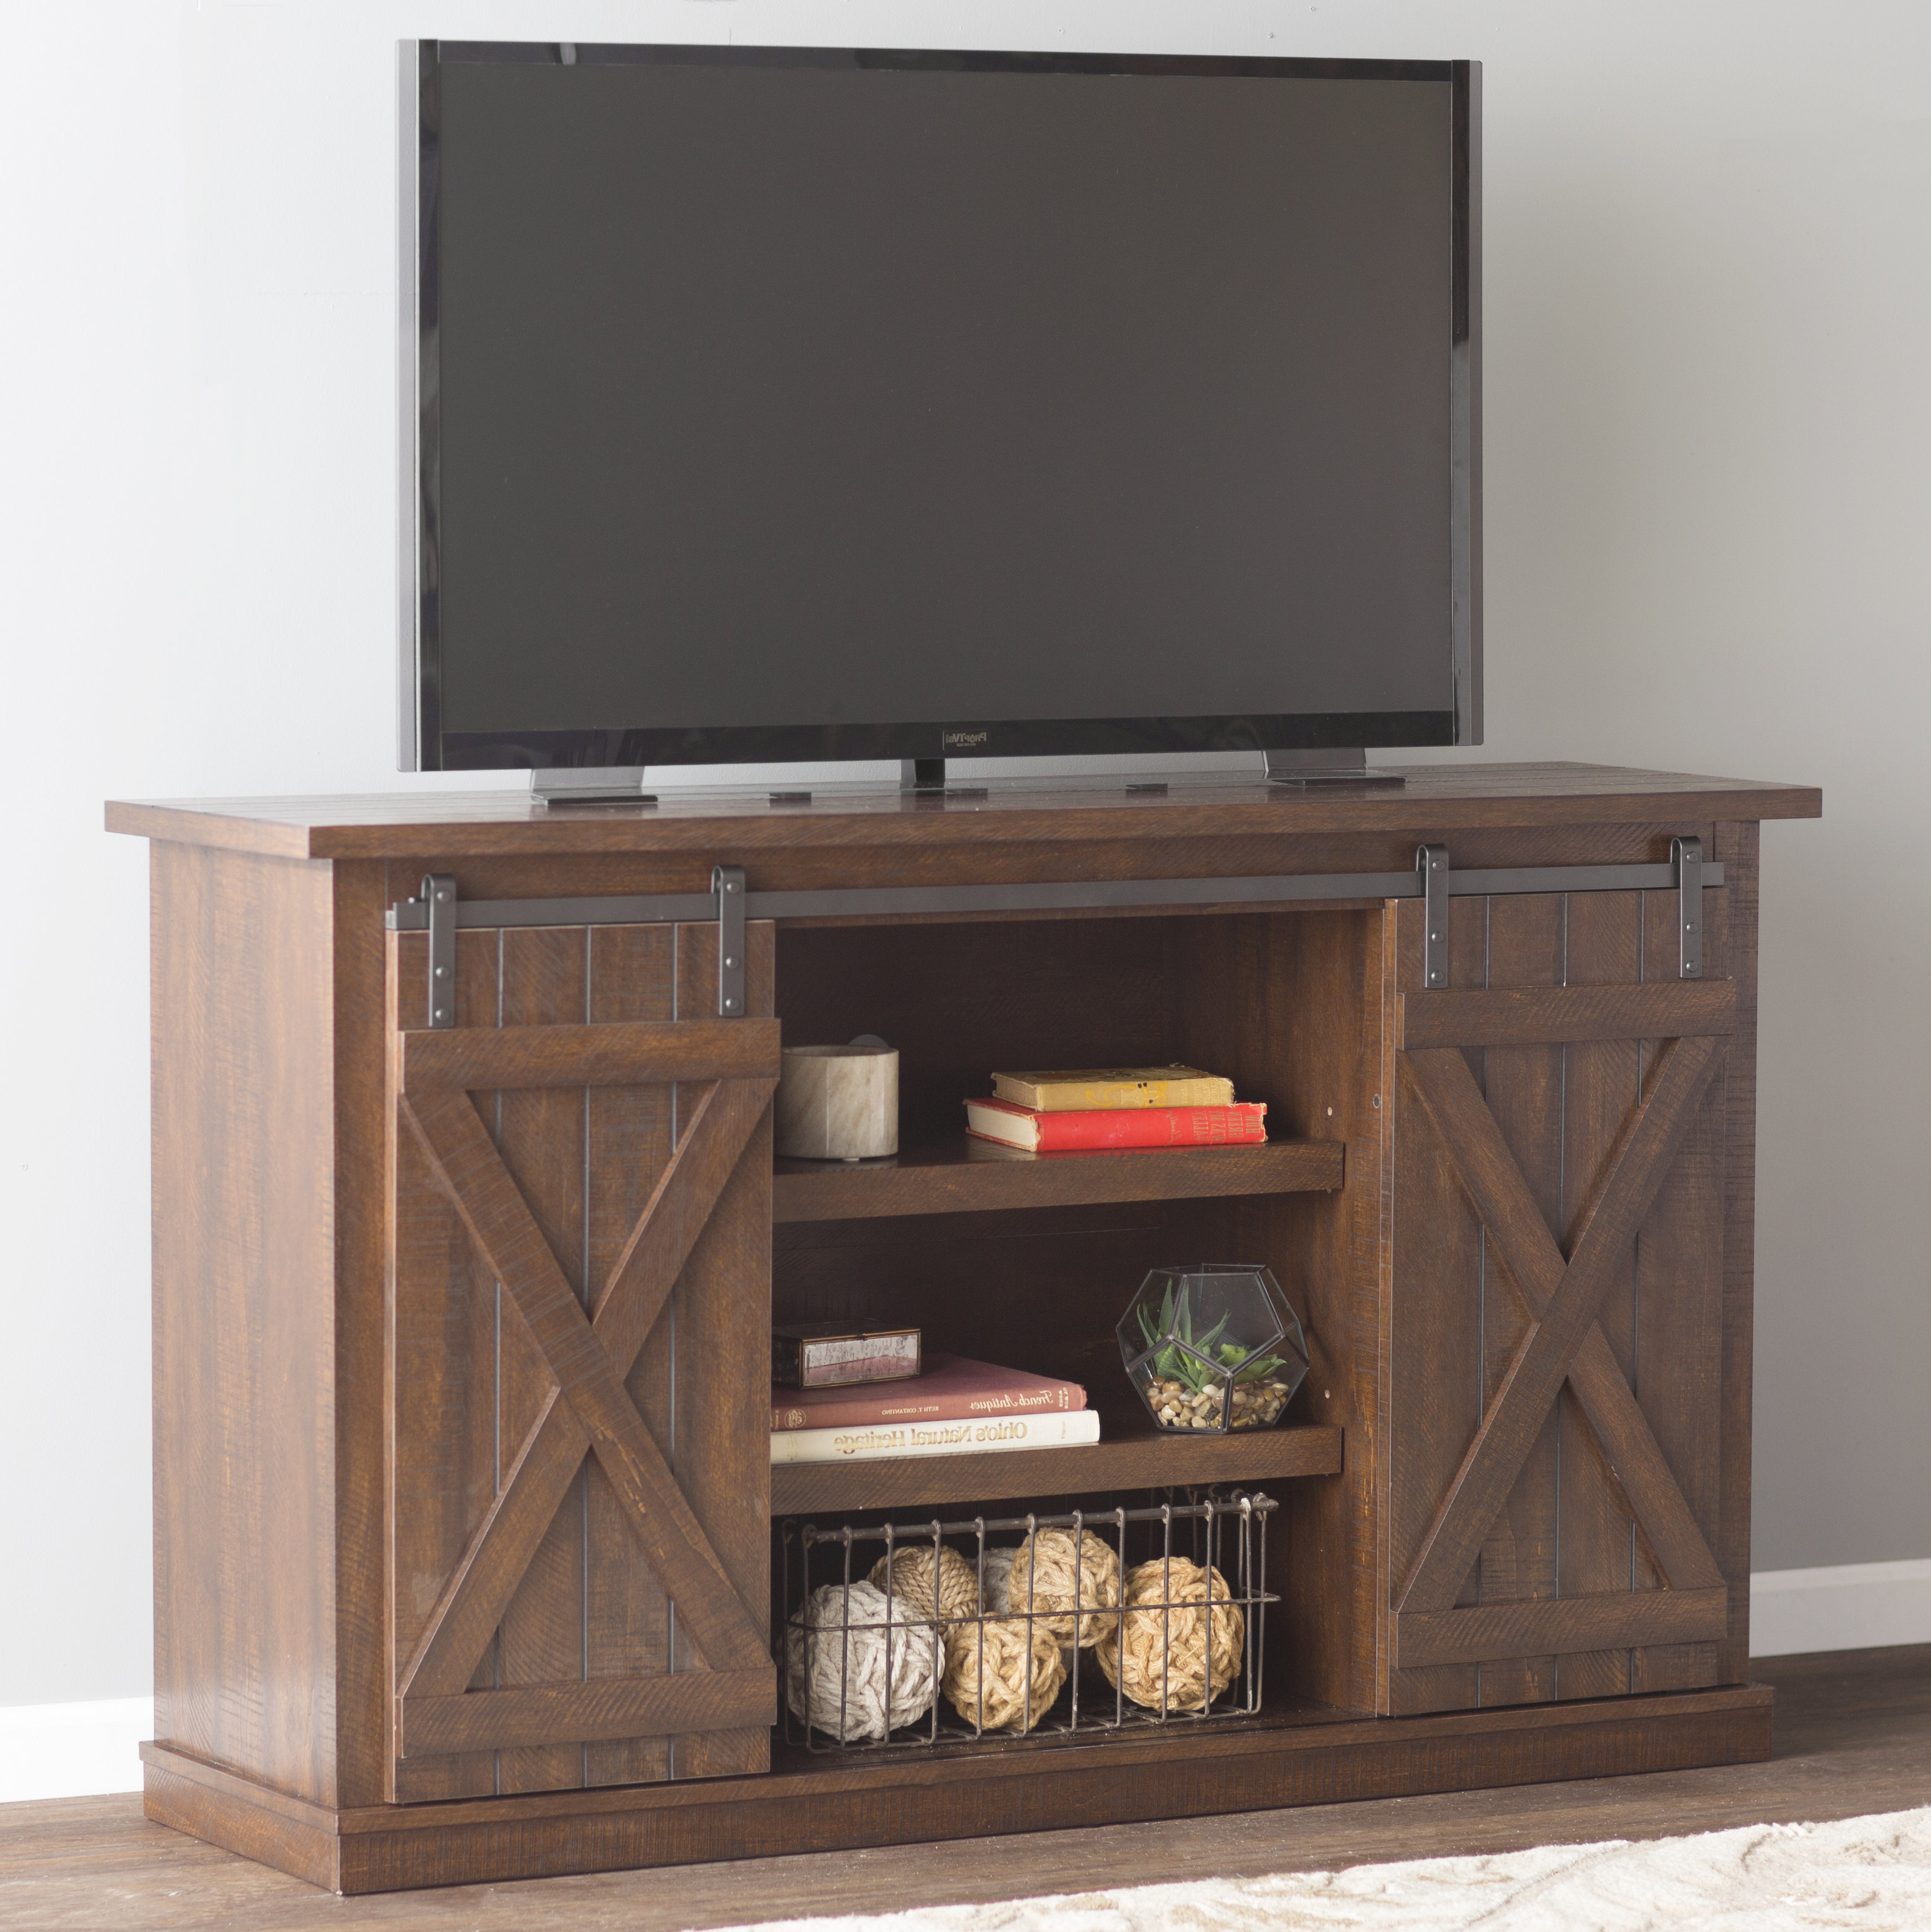 Recent Long Tv Stands Furniture With Regard To Tv Stands & Entertainment Centers You'll Love (Gallery 15 of 20)